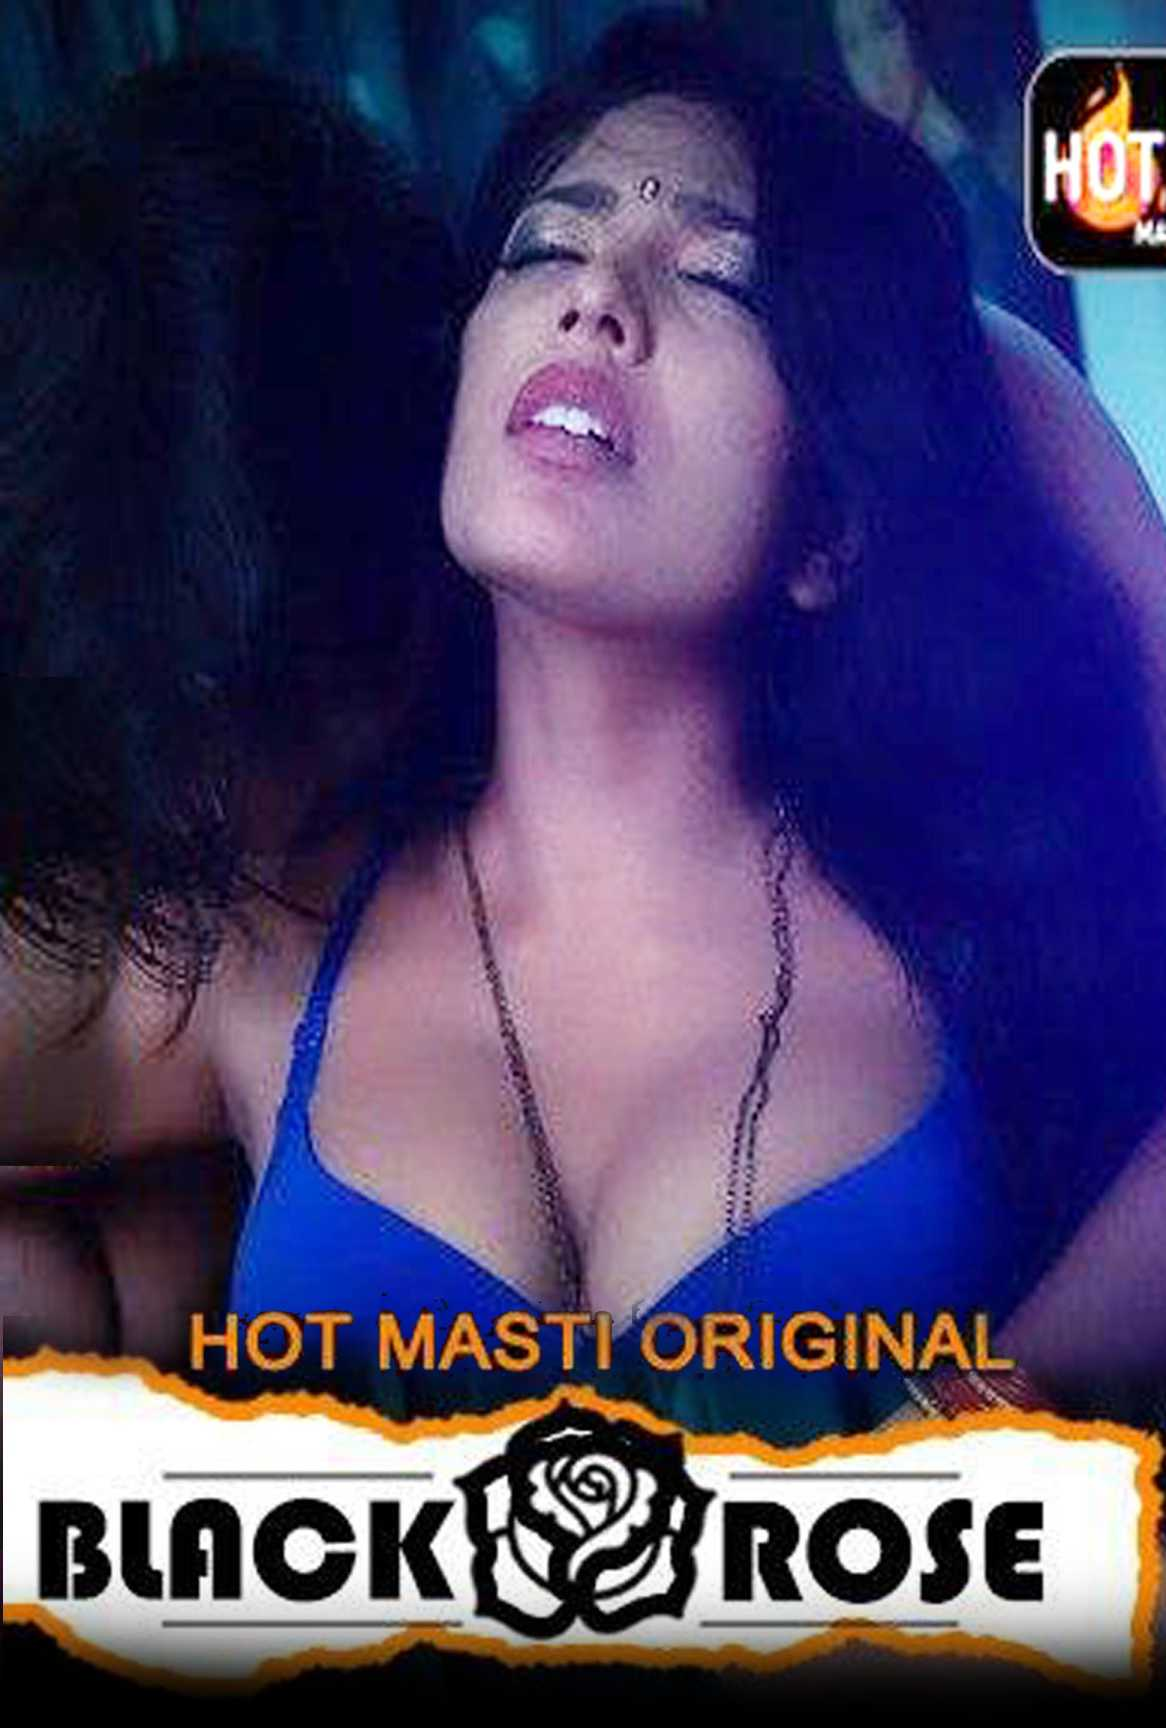 Black Rose S01E01 2020 Hindi HotMasti Original Web Series 720p HDRip 177MB Download